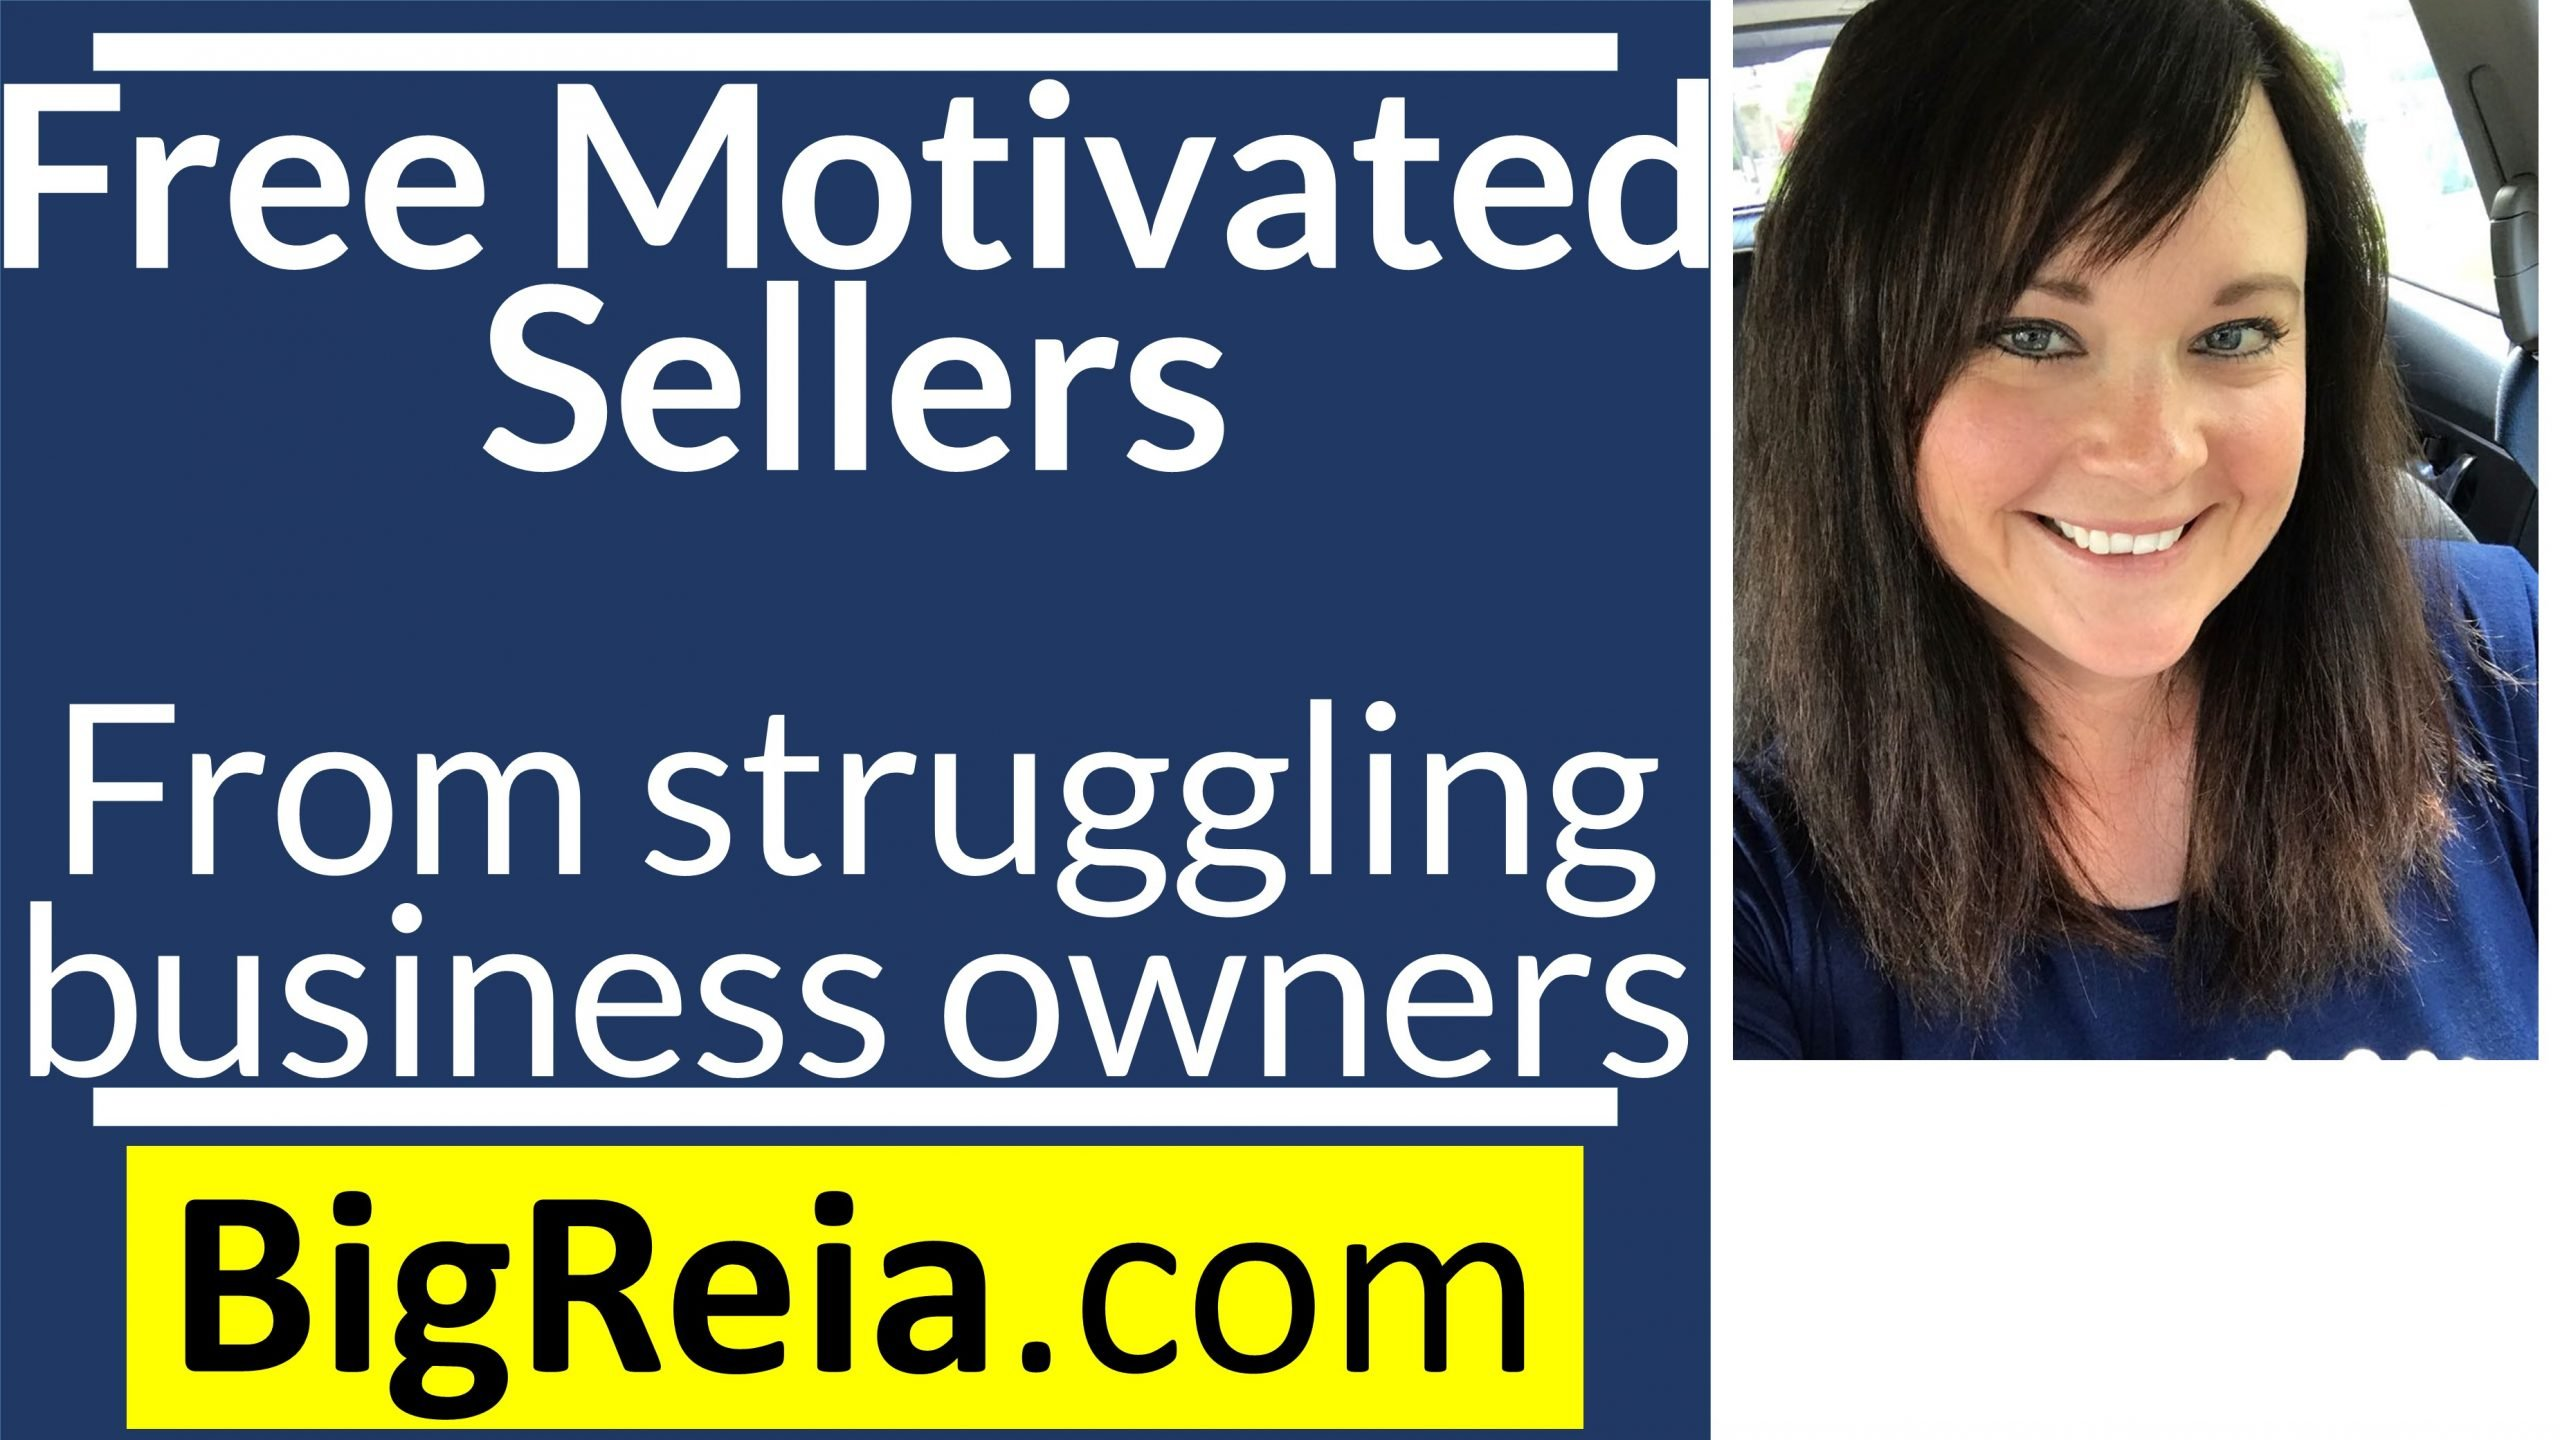 How to get free motivated sellers by helping business owners who are going out of business.